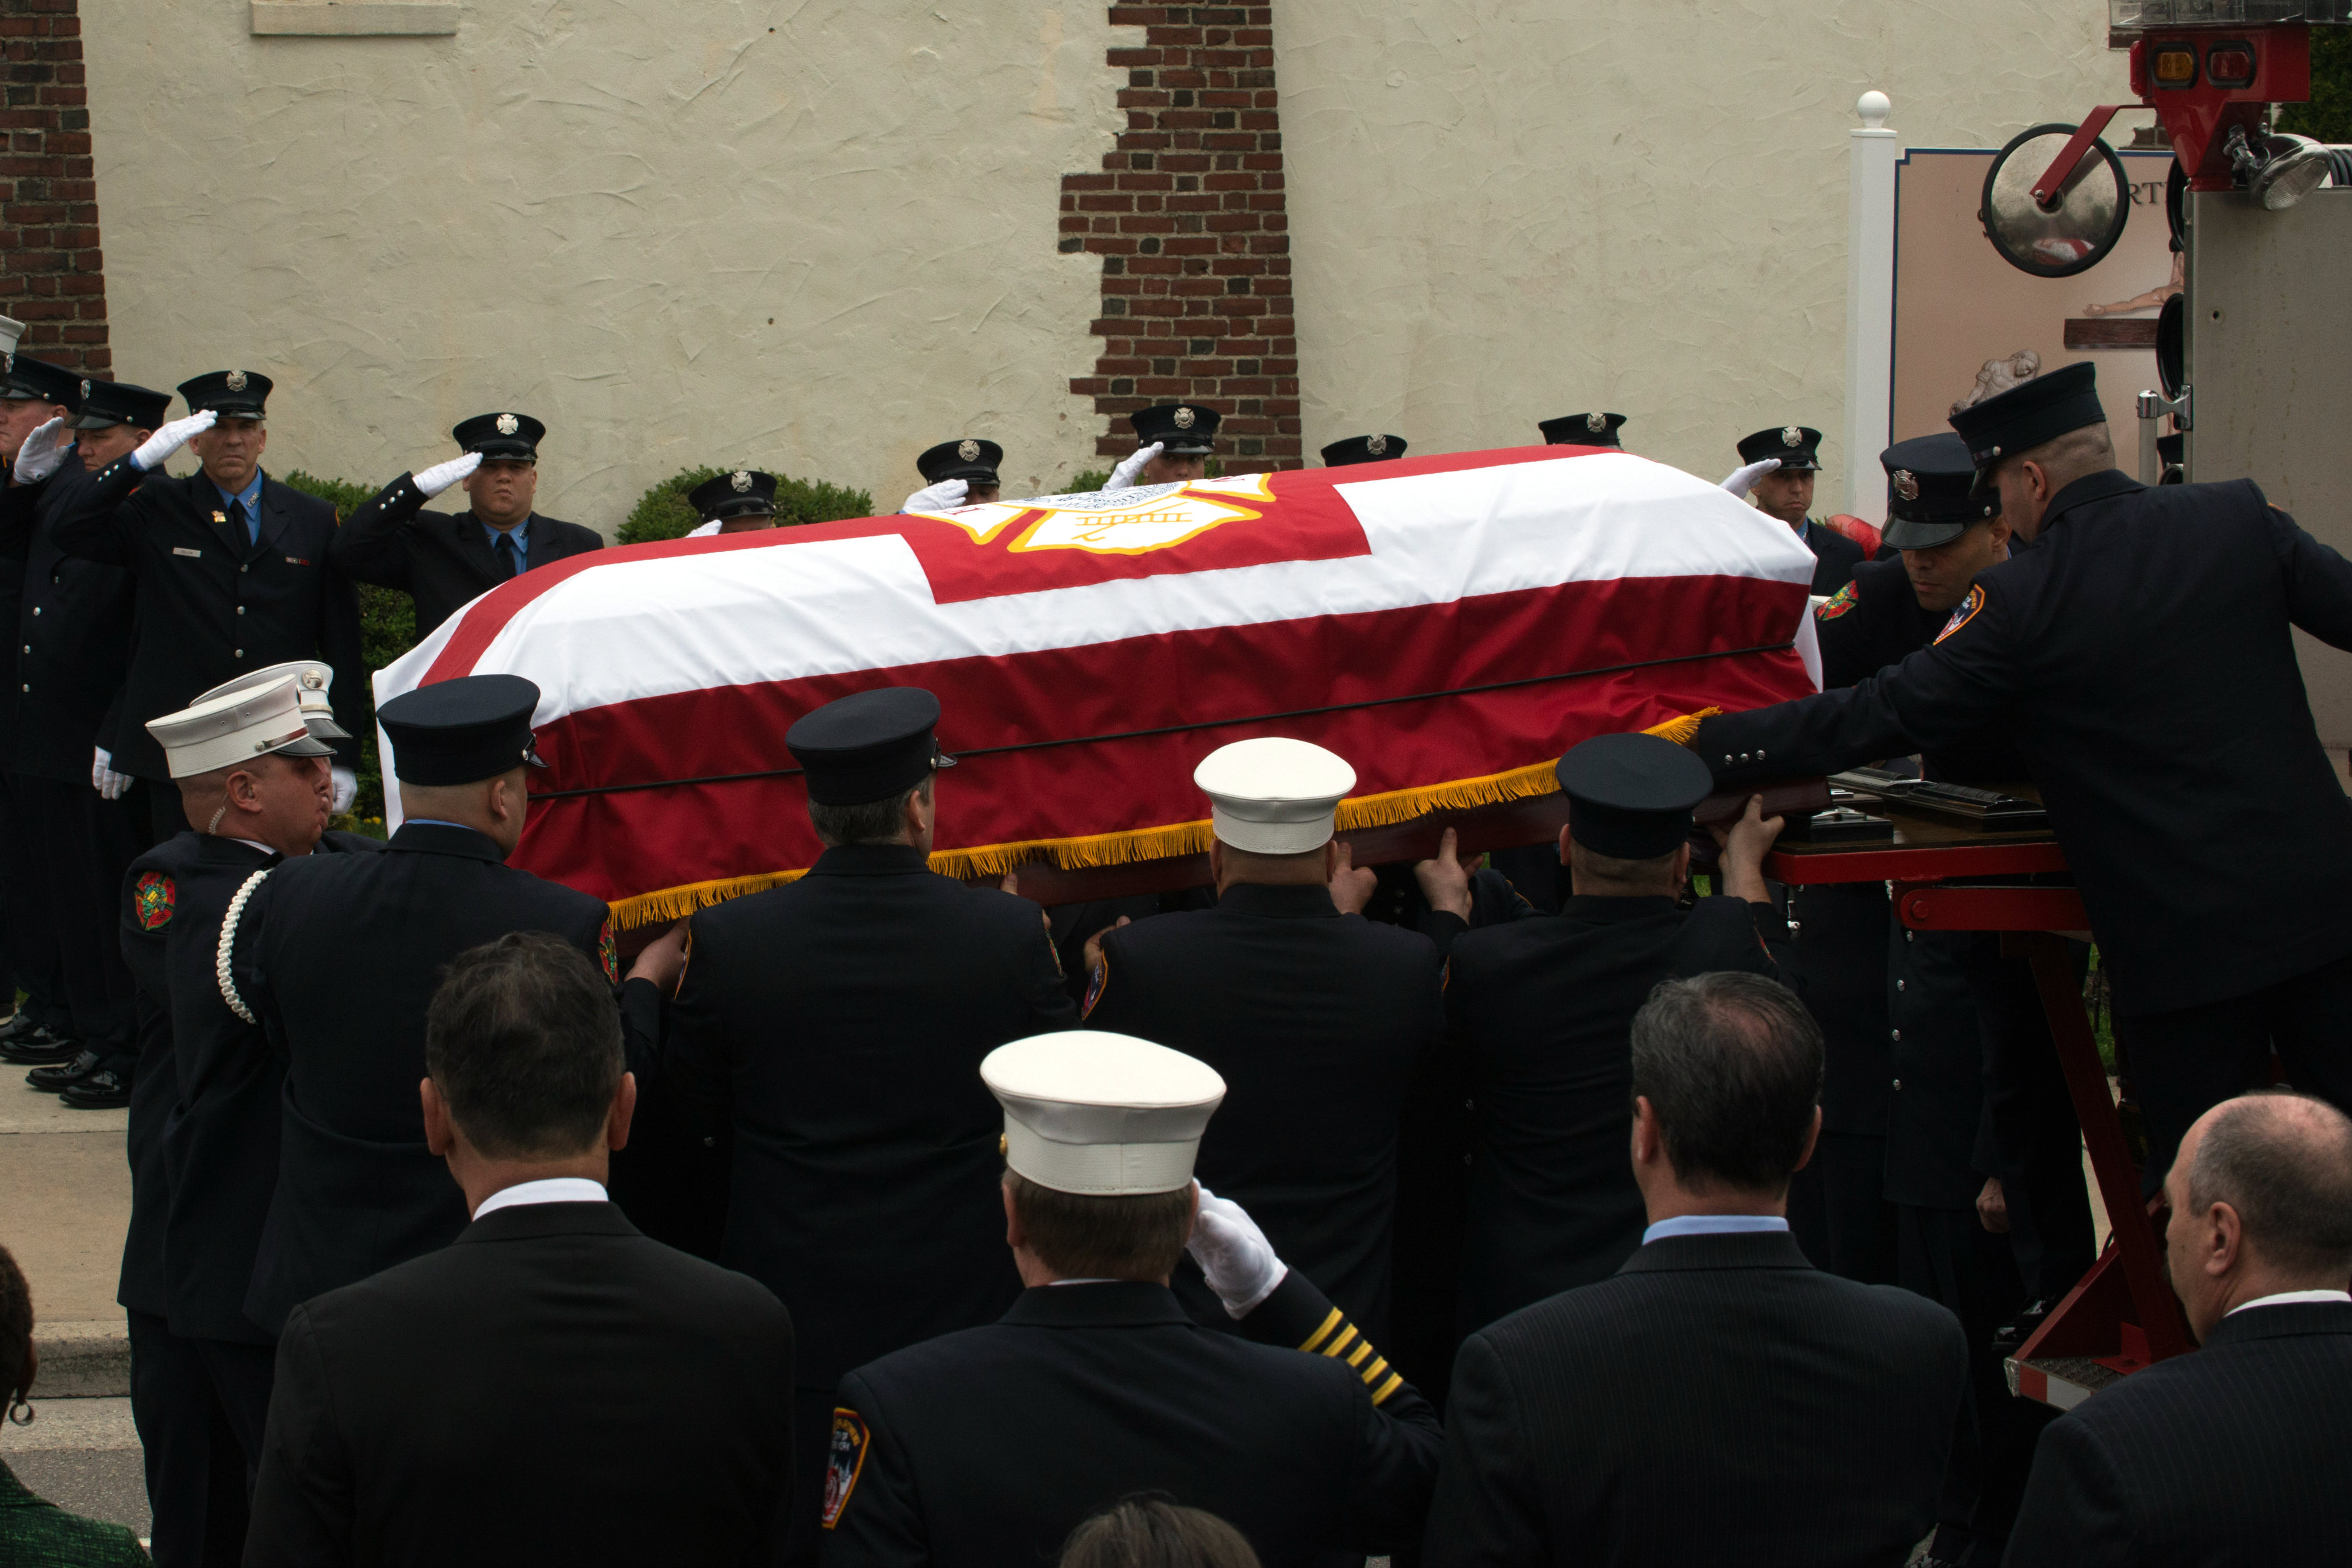 Funeral for FDNY Firefighter William Tolley